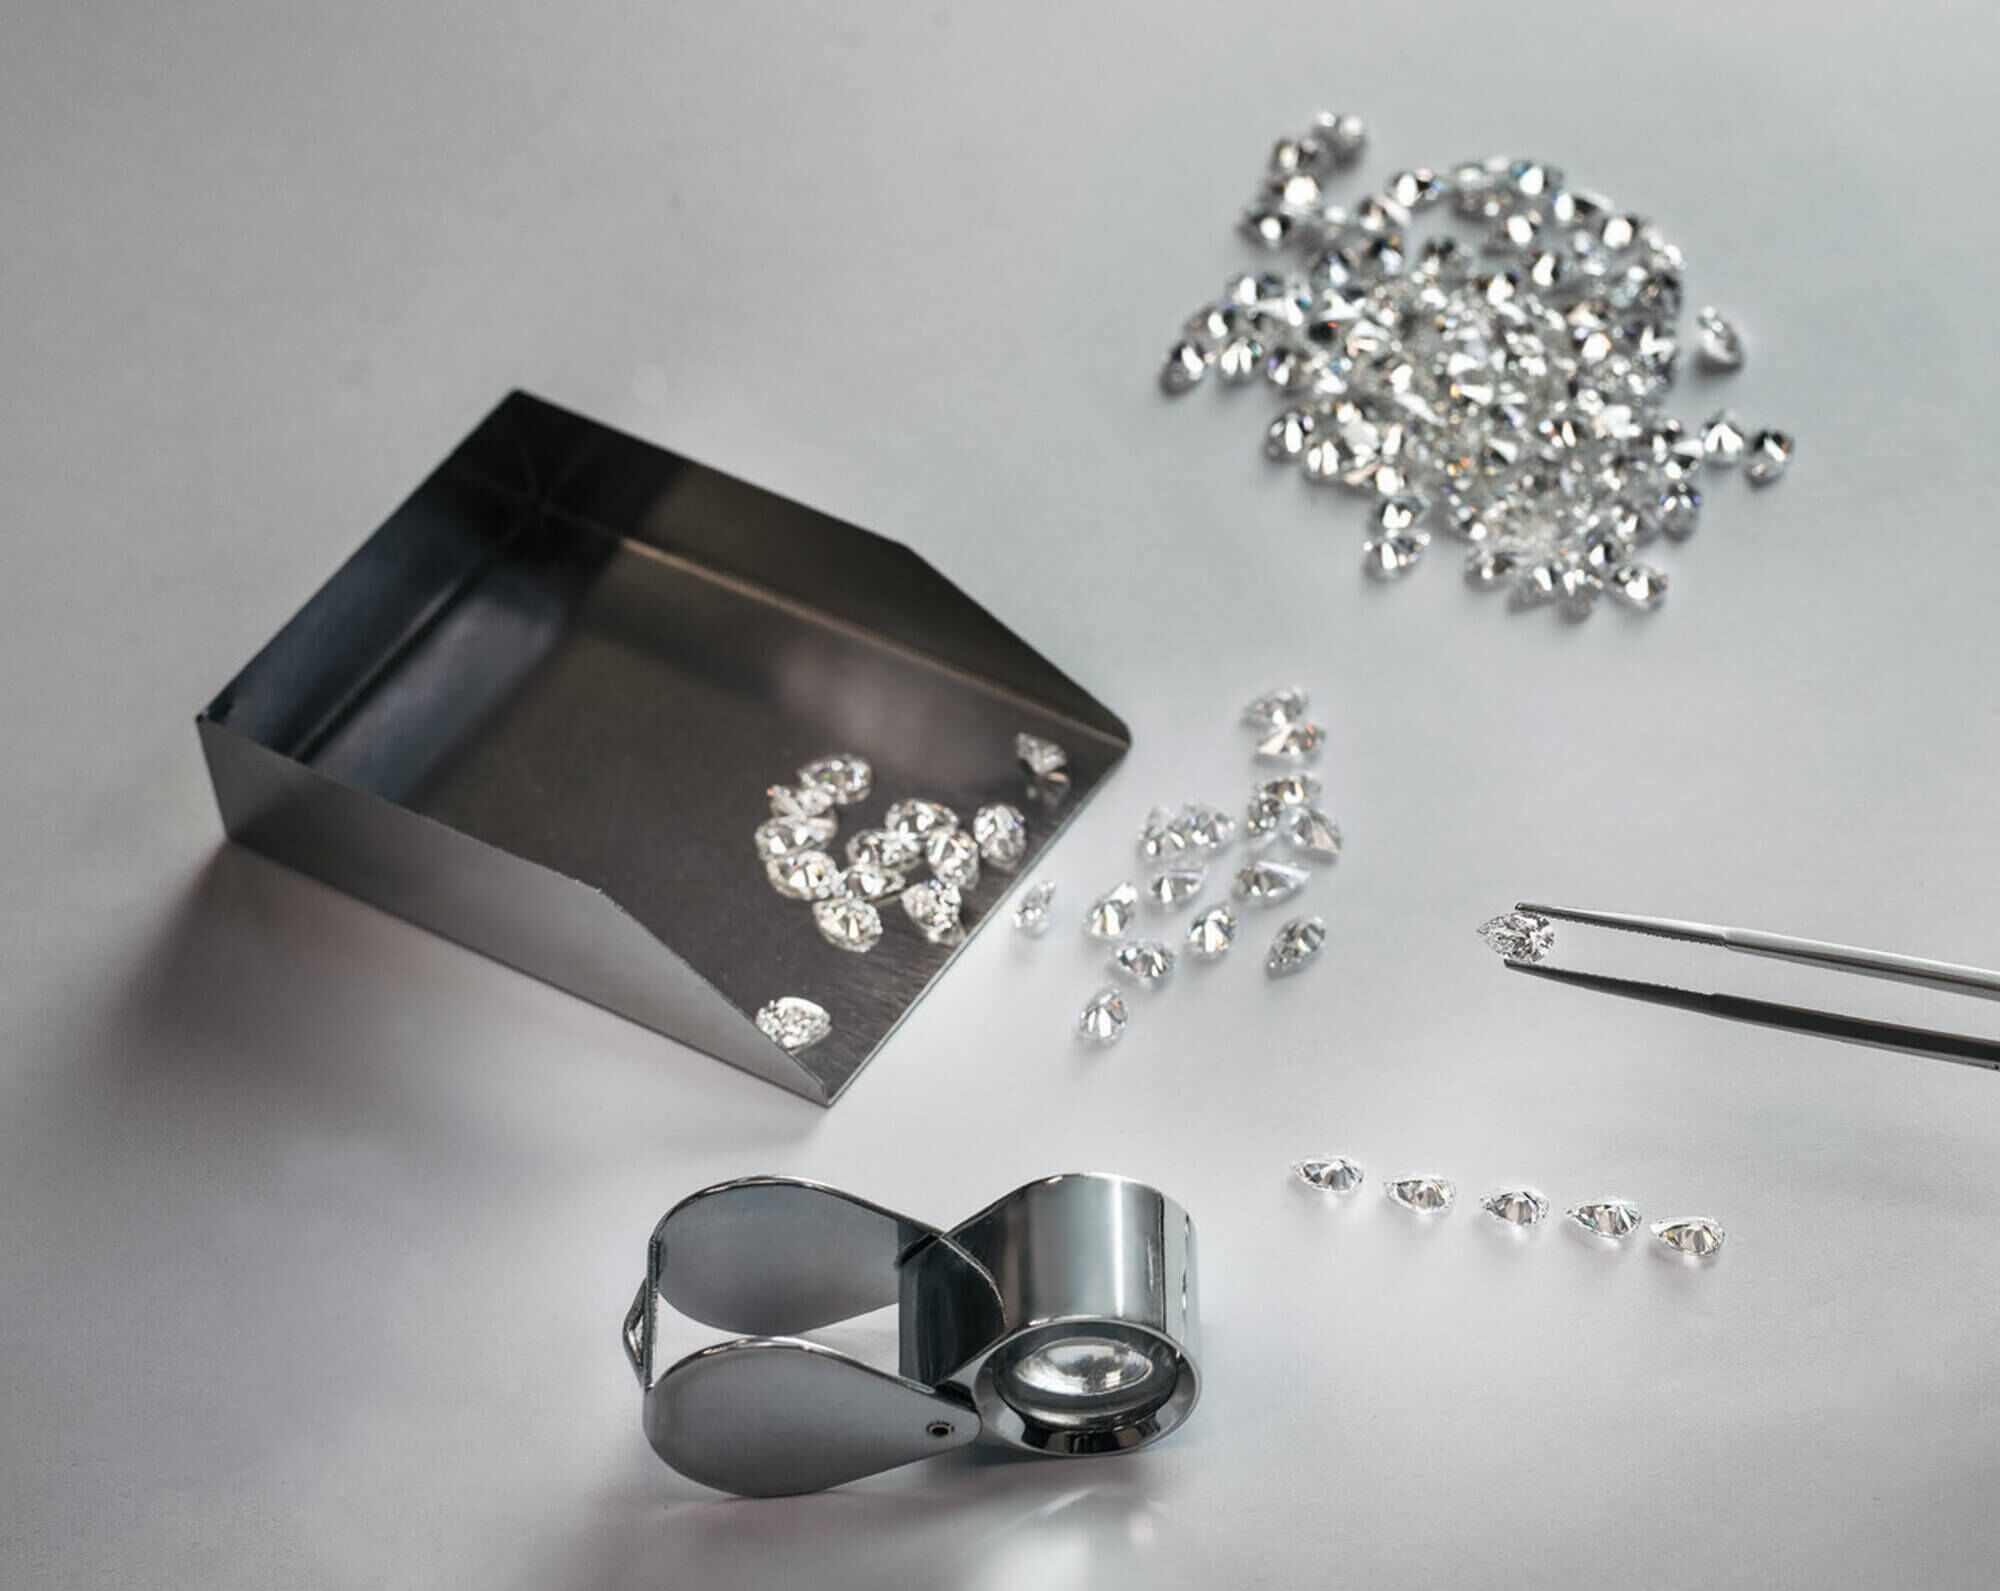 Graff diamond setter lining up diamonds with tools on the table